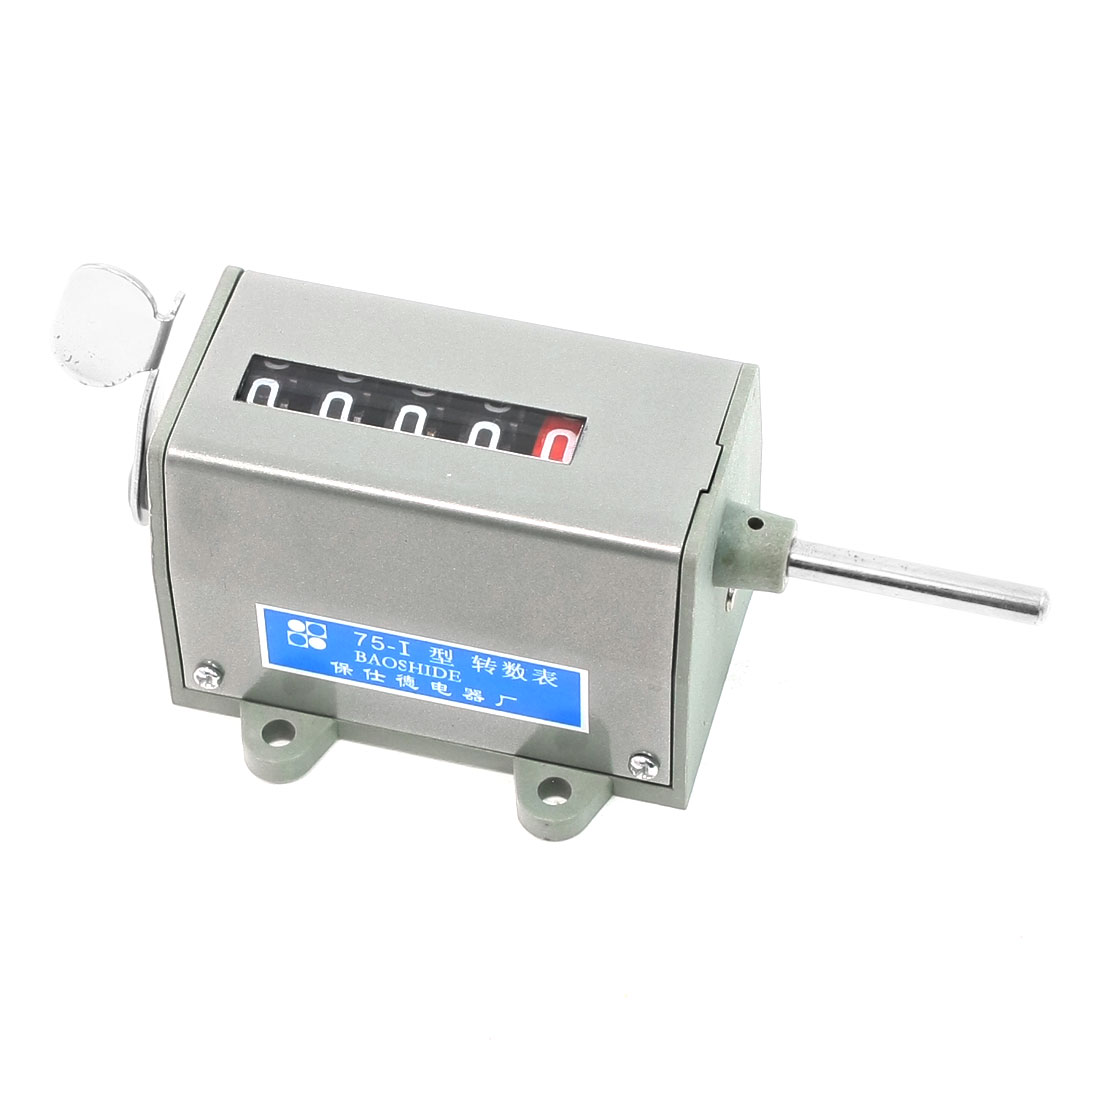 Mechanical Resettable 5 Digits Display Rotary Counter